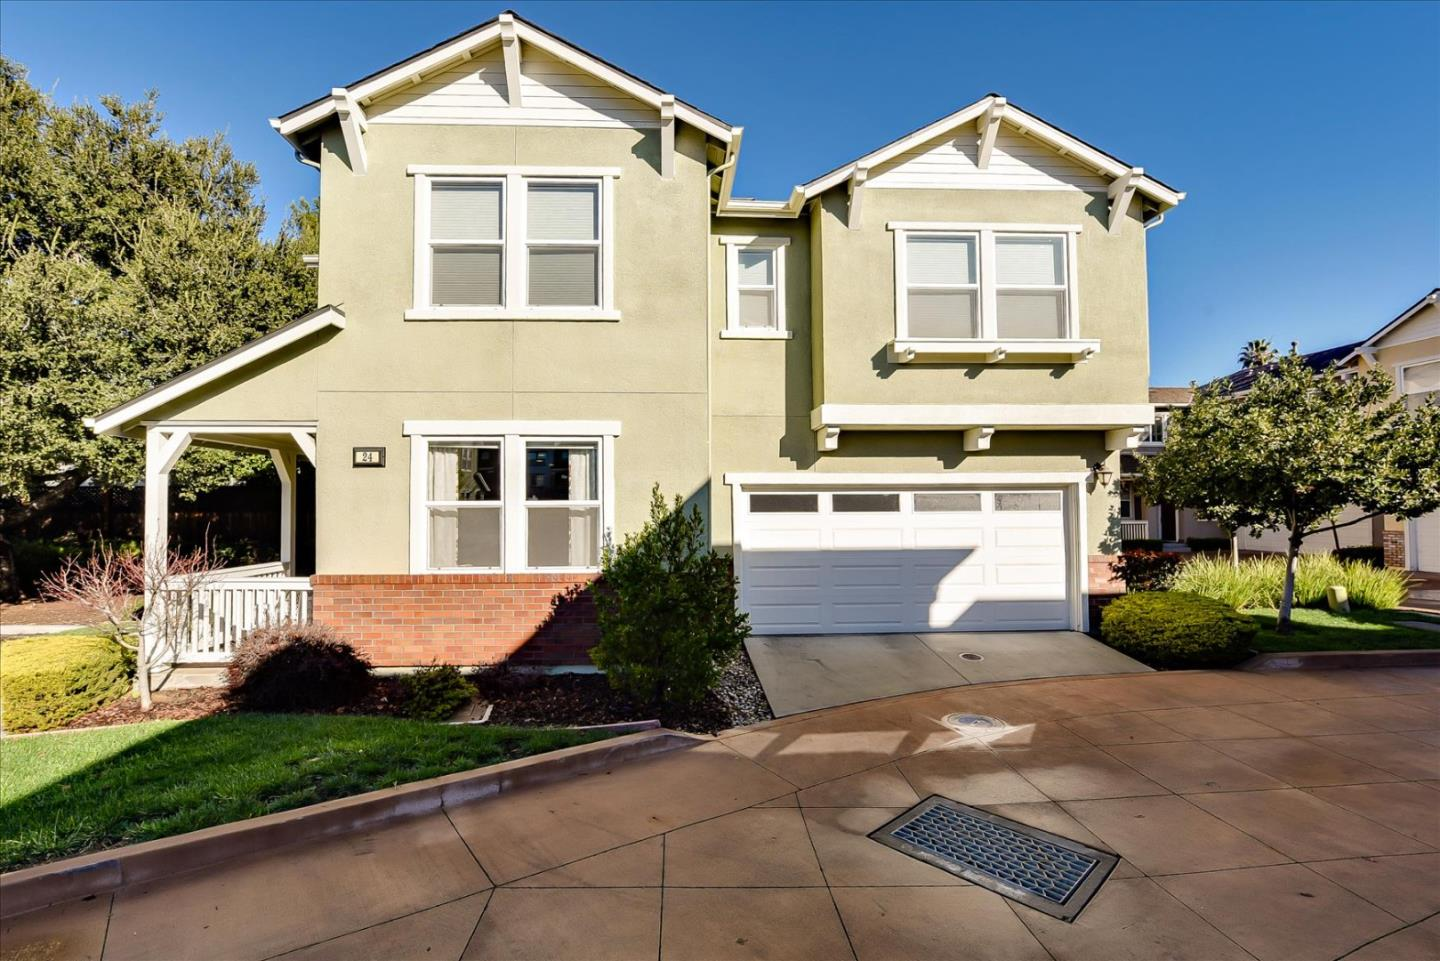 Detail Gallery Image 1 of 1 For 24 Maravilla Ct, Campbell,  CA 95008 - 3 Beds | 2/1 Baths